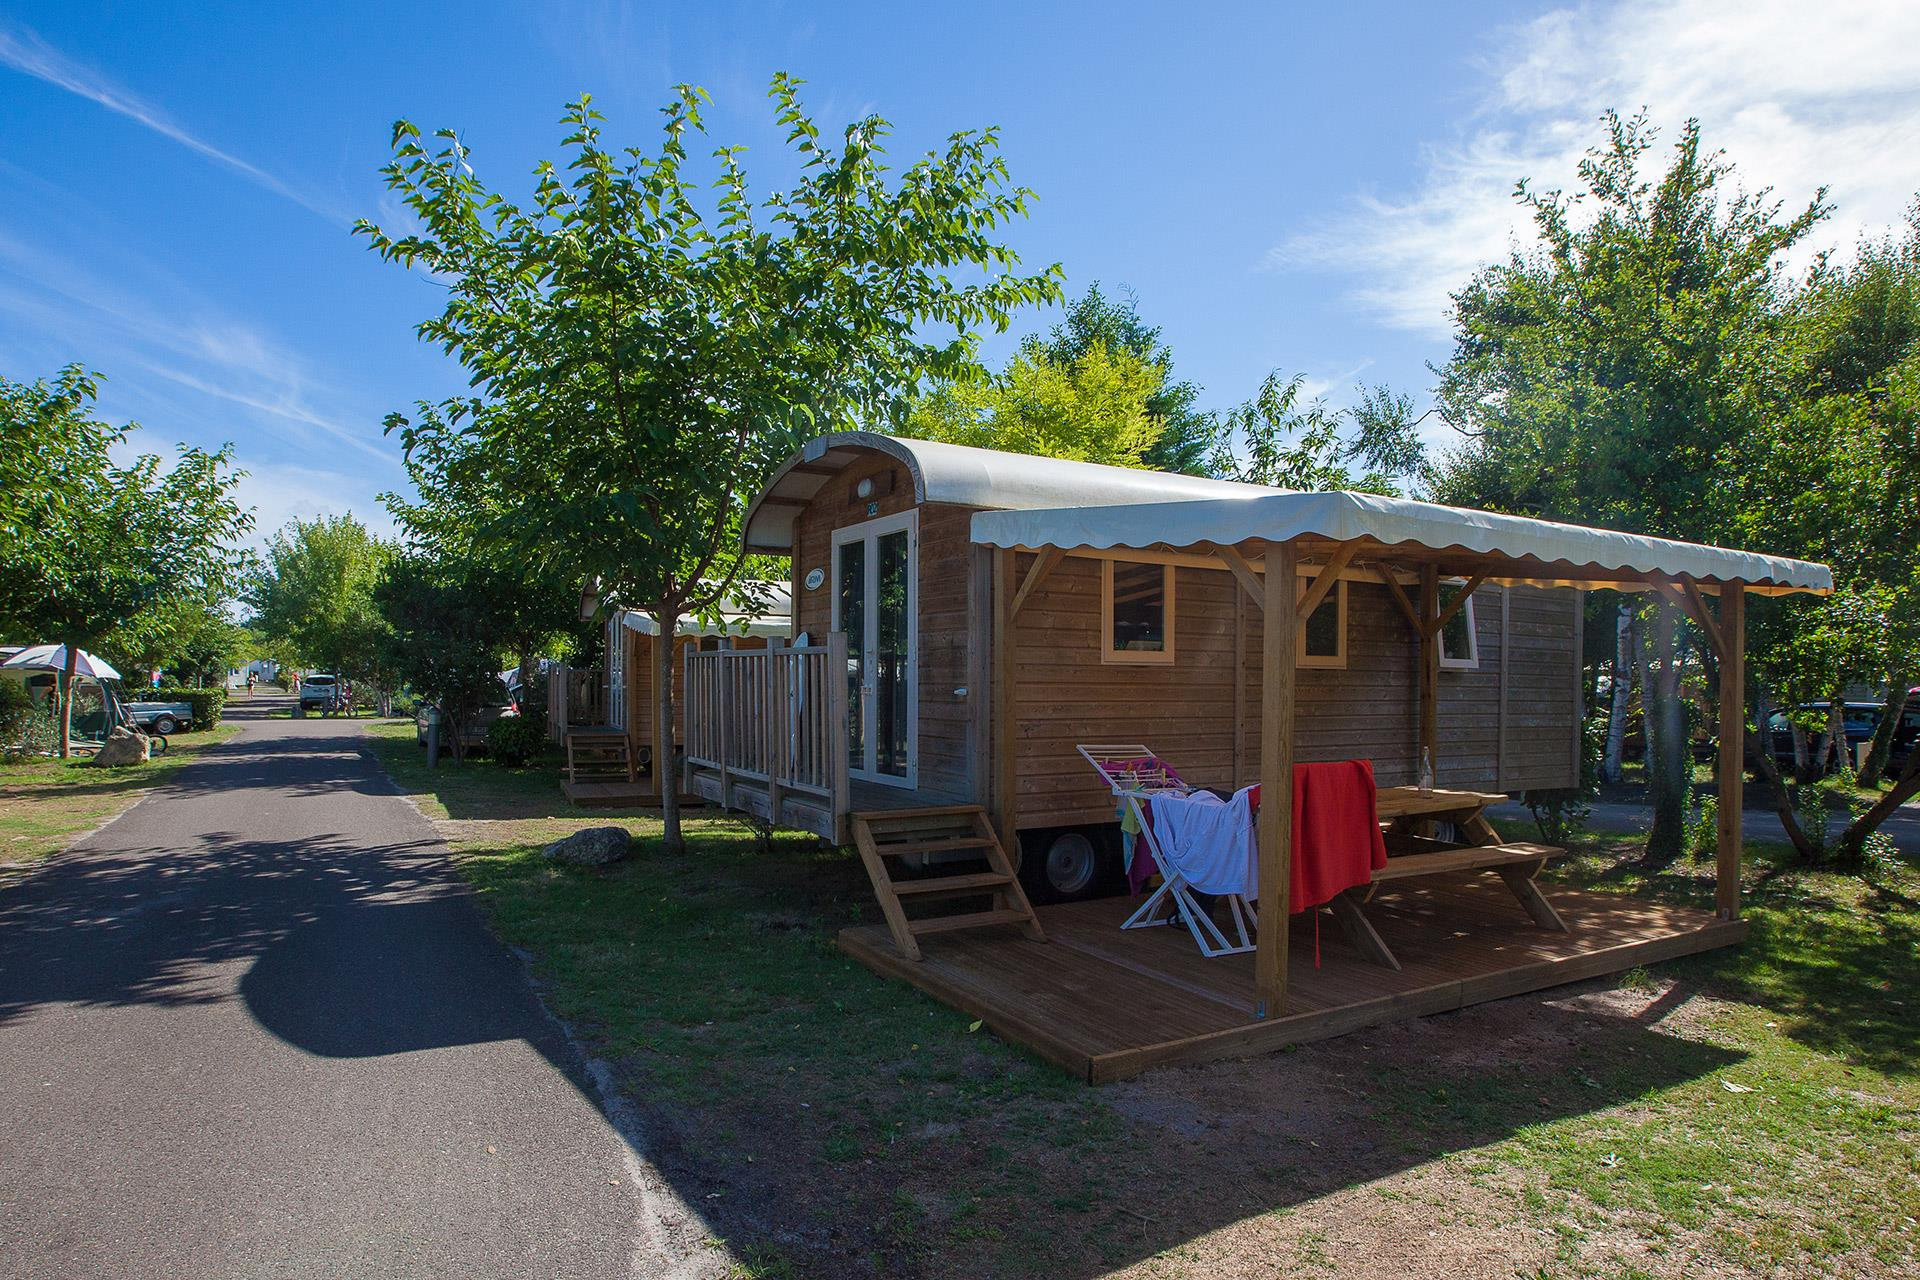 Location - Roulotte 2 Chambres Insolite - Camping Sandaya Sanguinet Plage